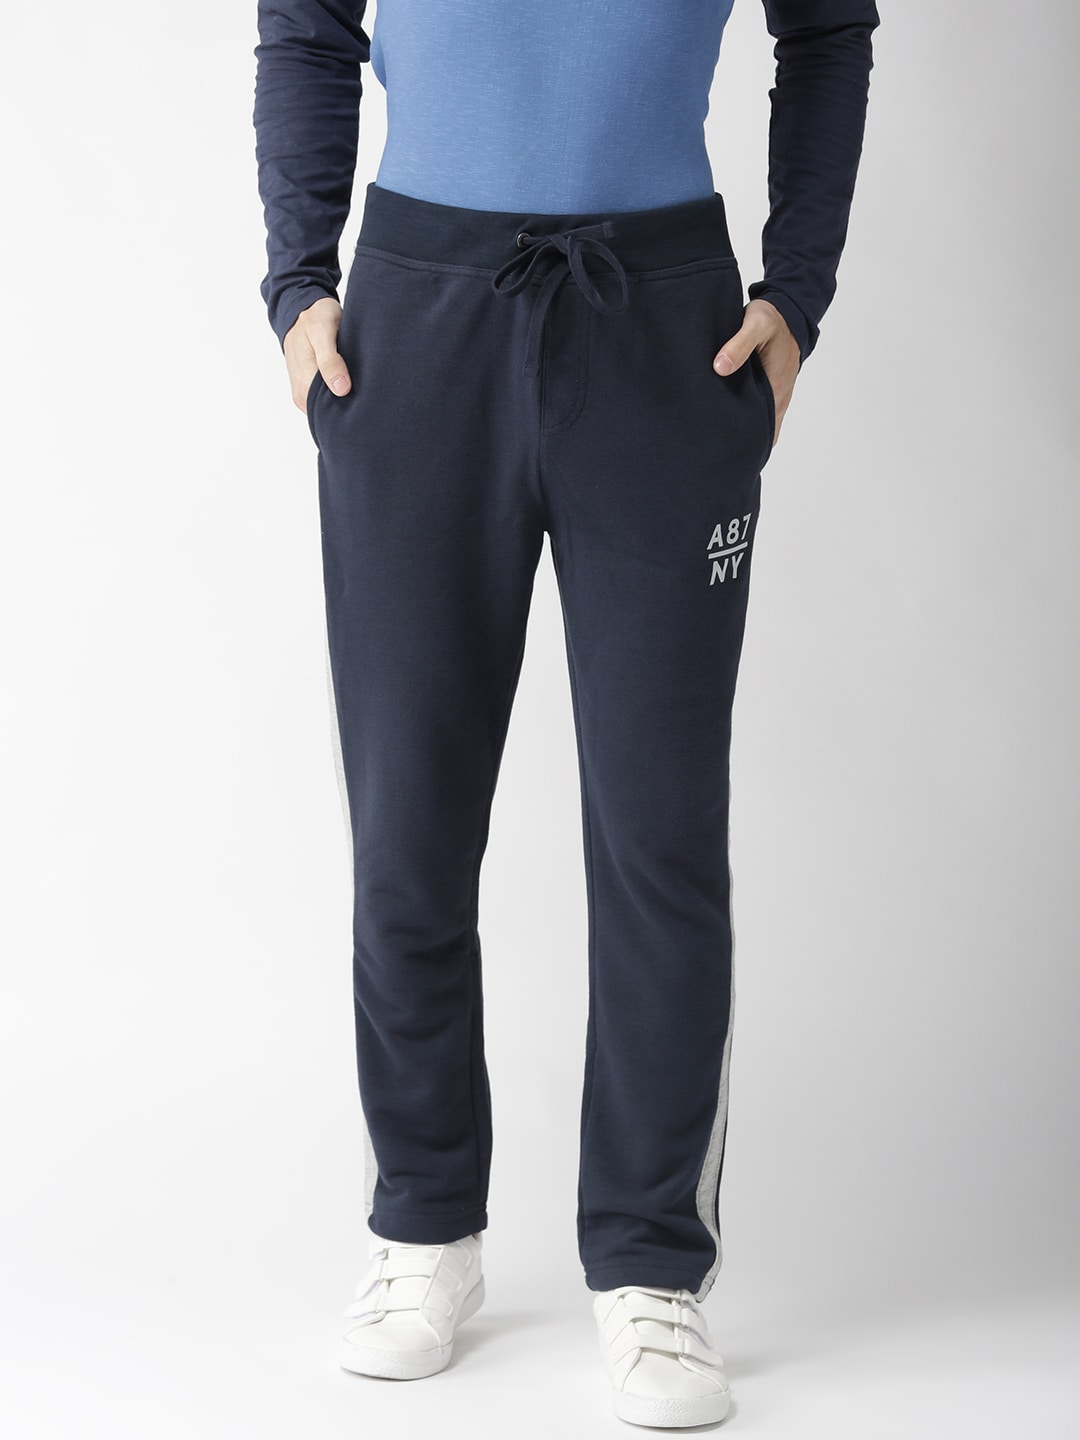 f10b53cd187 Nylon Track Trousers Trousers Trousers - Buy Nylon Track Trousers Trousers  Trousers online in India